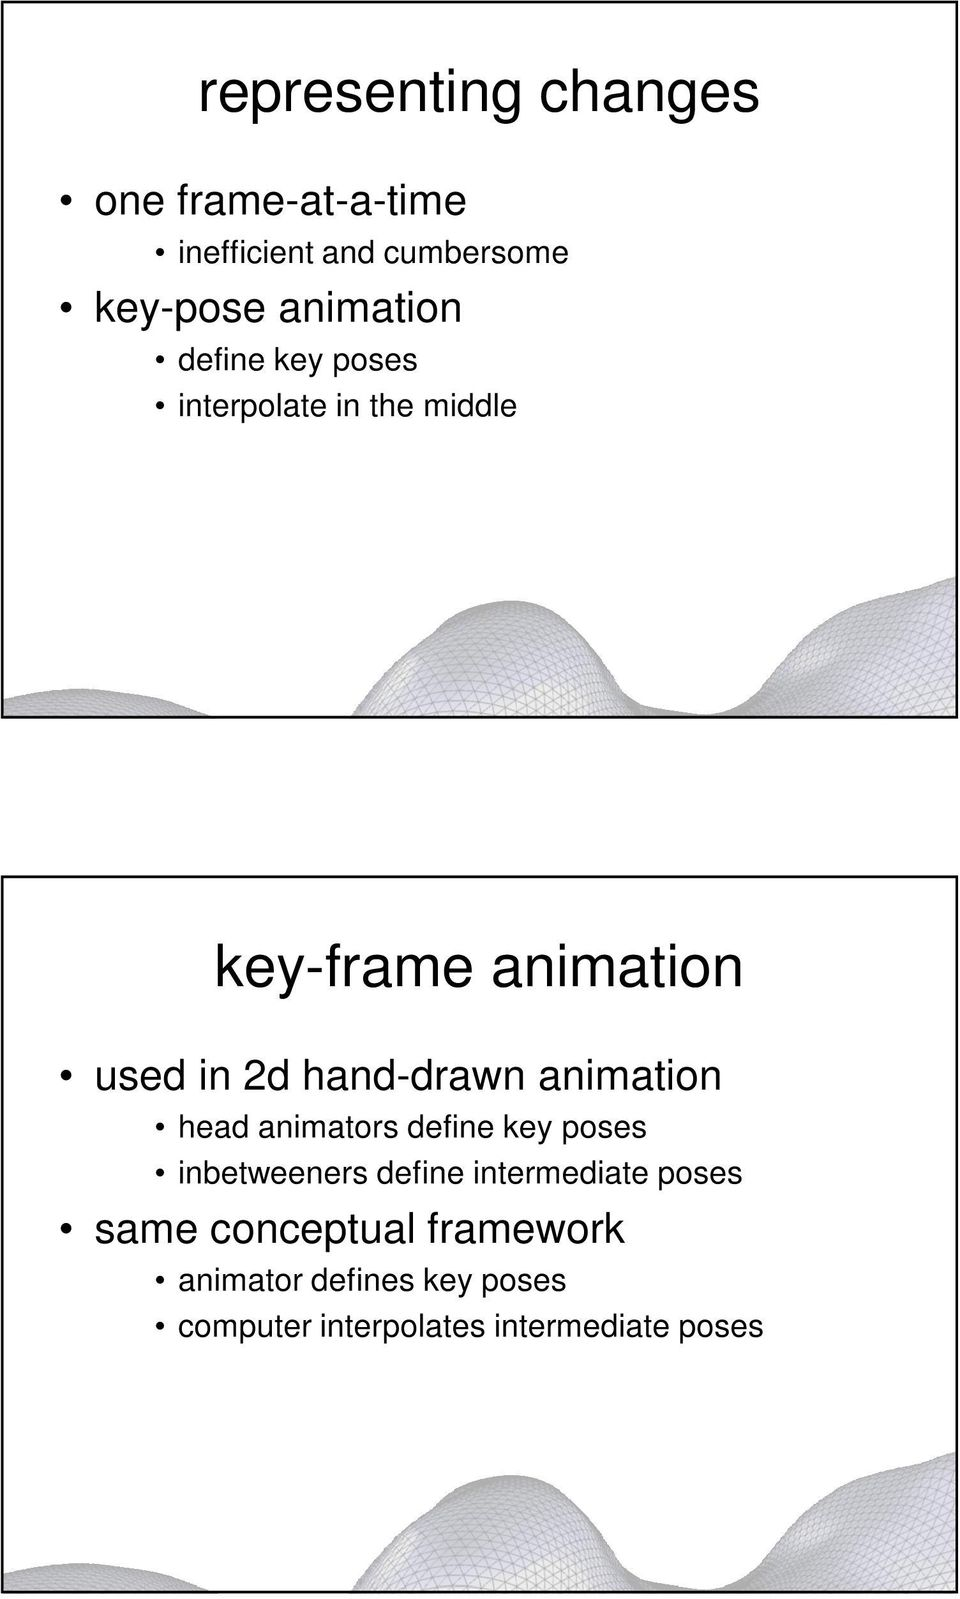 animation head animators define key poses inbetweeners define intermediate poses same